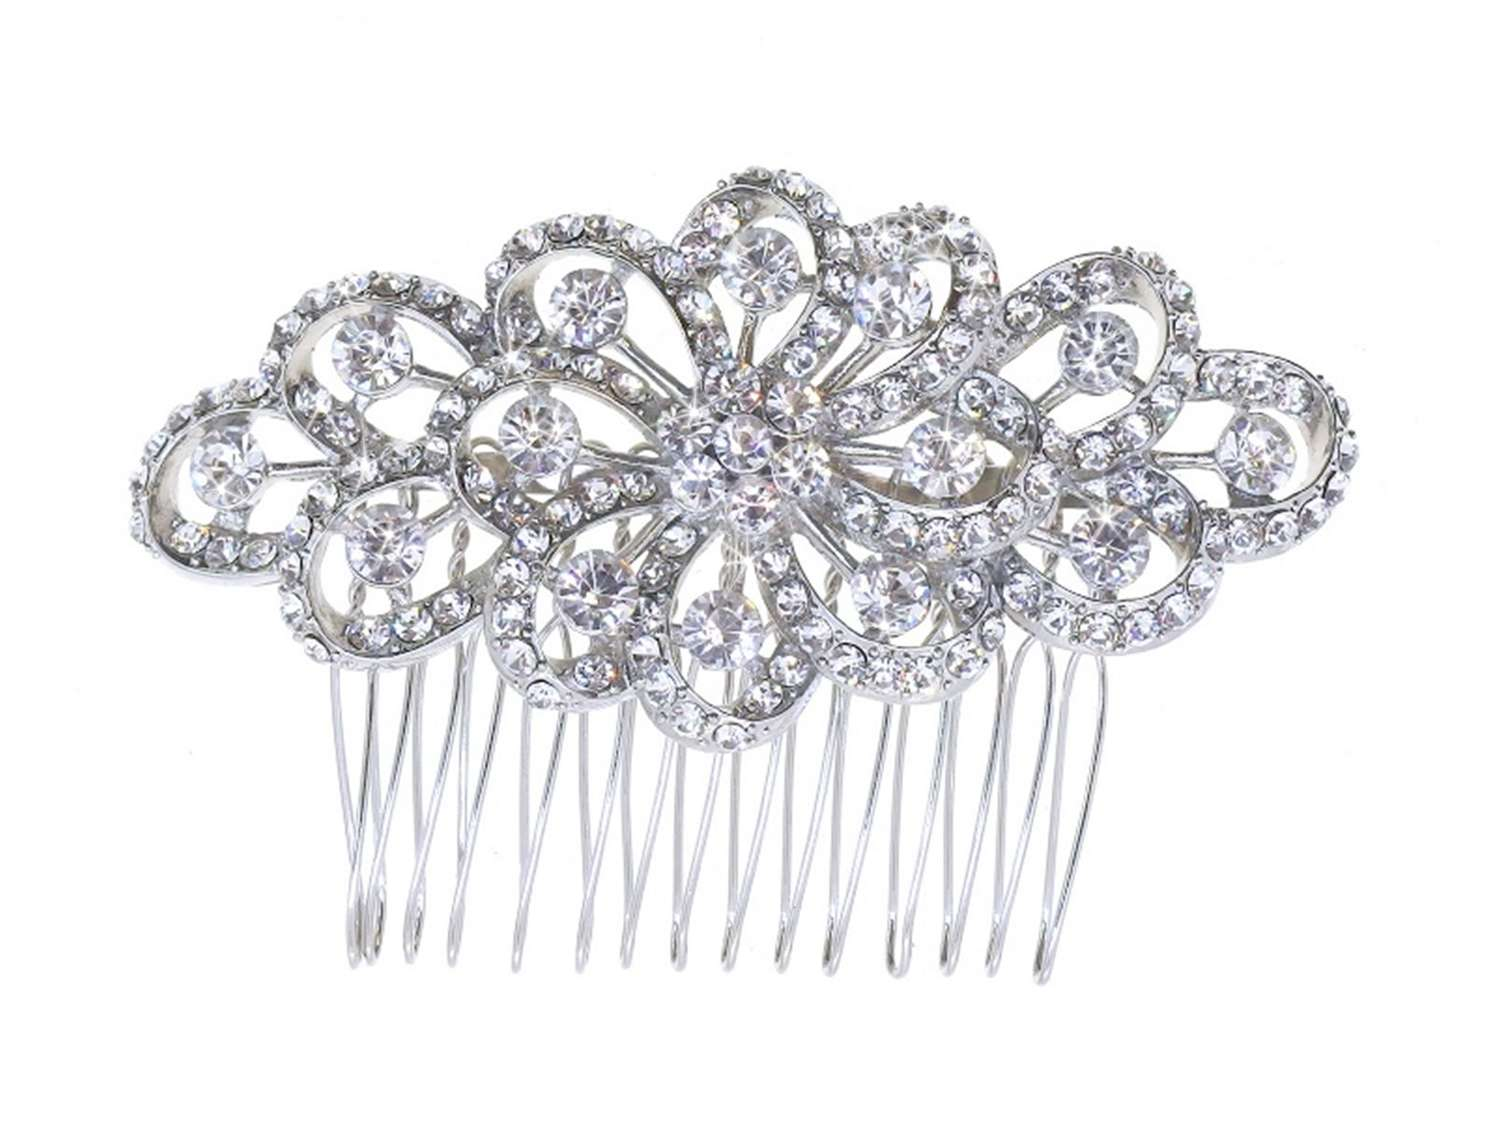 Crystal Exquisite Floral Loops Hair Comb